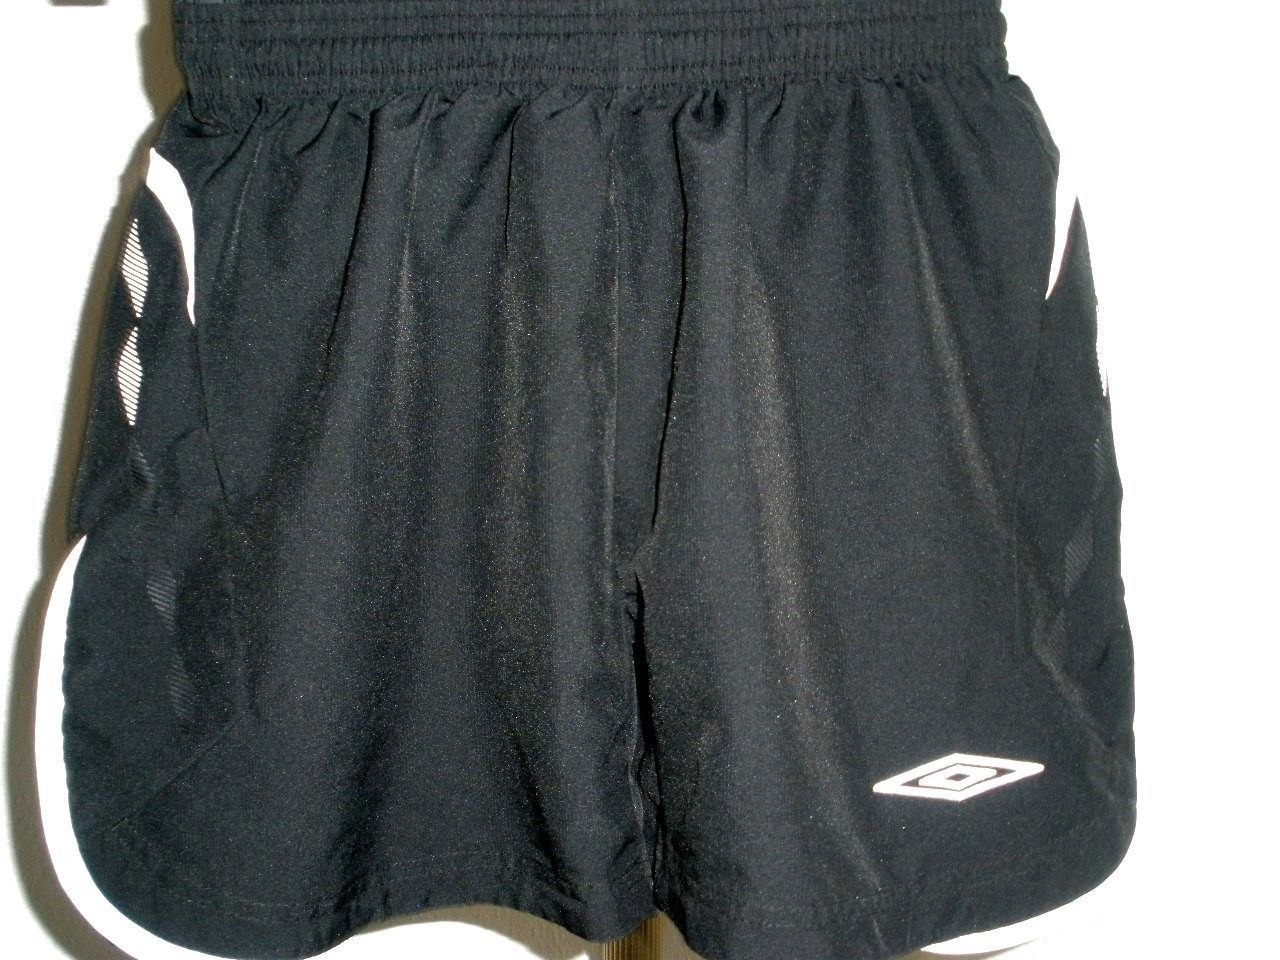 ed63cce86 Youth Medium Umbro Soccer Shorts Excellent and 50 similar items. S l1600